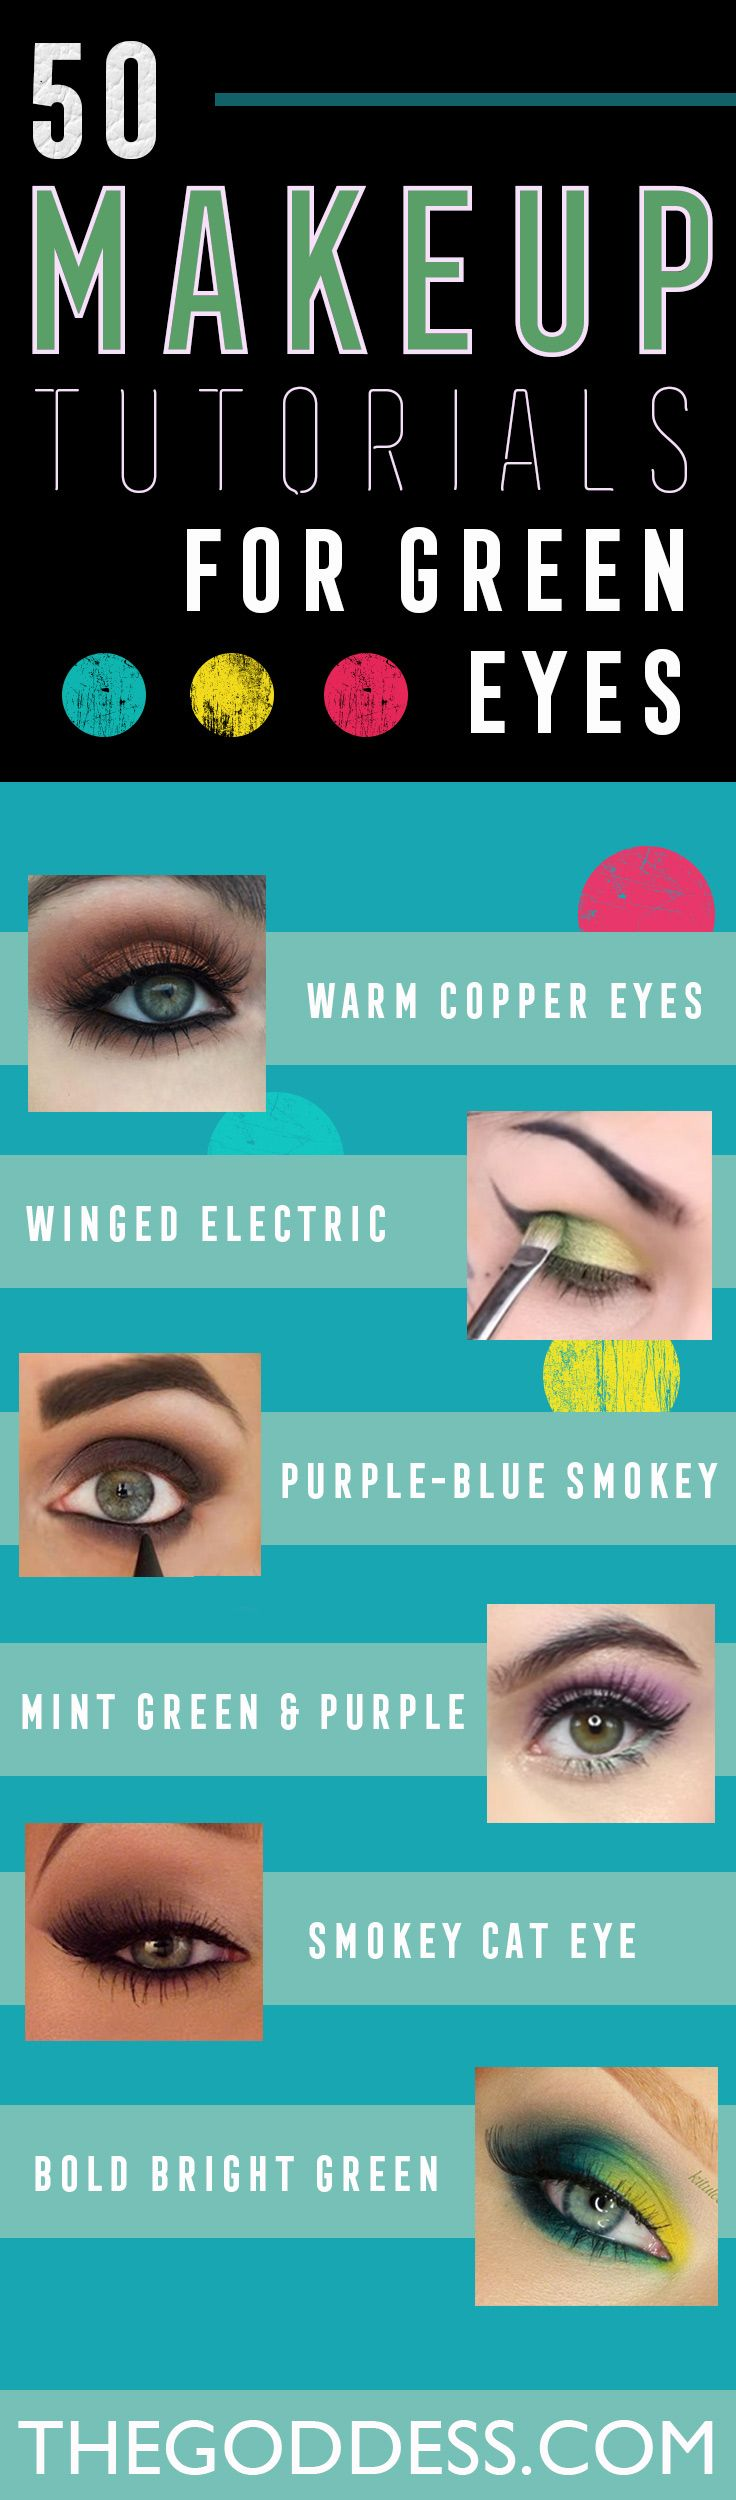 50 Perfect Makeup Tutorials For Green Eyes The Goddess Pinterest Inez Color Contour Plus Loose Eyeshadow Powder Sparkling Silver Easy Video And Tutorial Ideas Natural Everyday Step